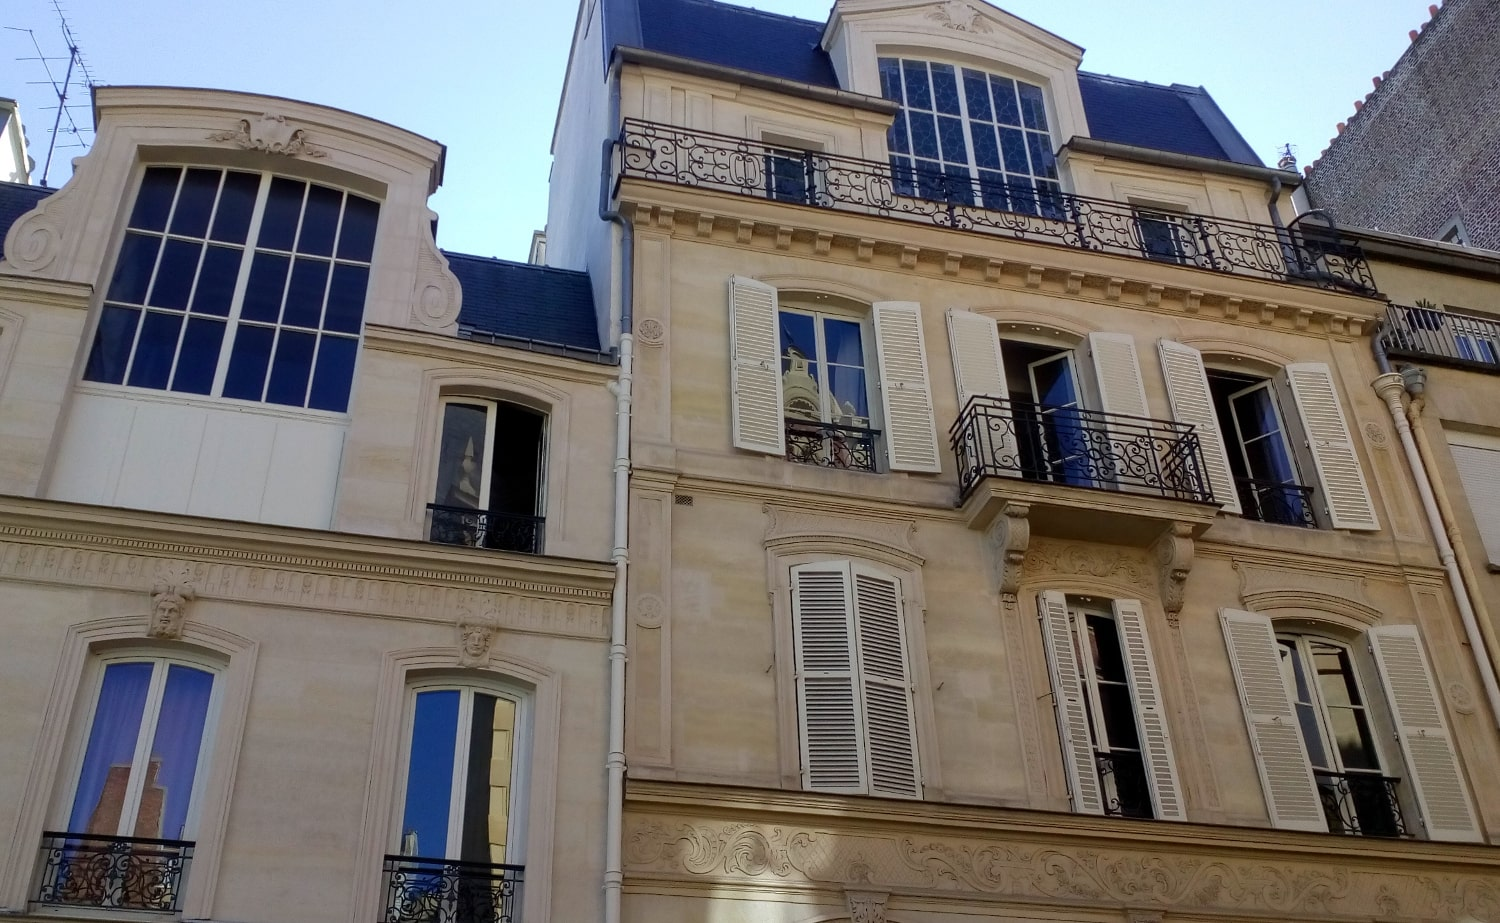 Photograph of 23 Rue Ballu Paris 75009. We see an apartment facade with large artist studio type windows on the upper floors of the building. Edgar Degas lived and worked here from 1890 – 1897.